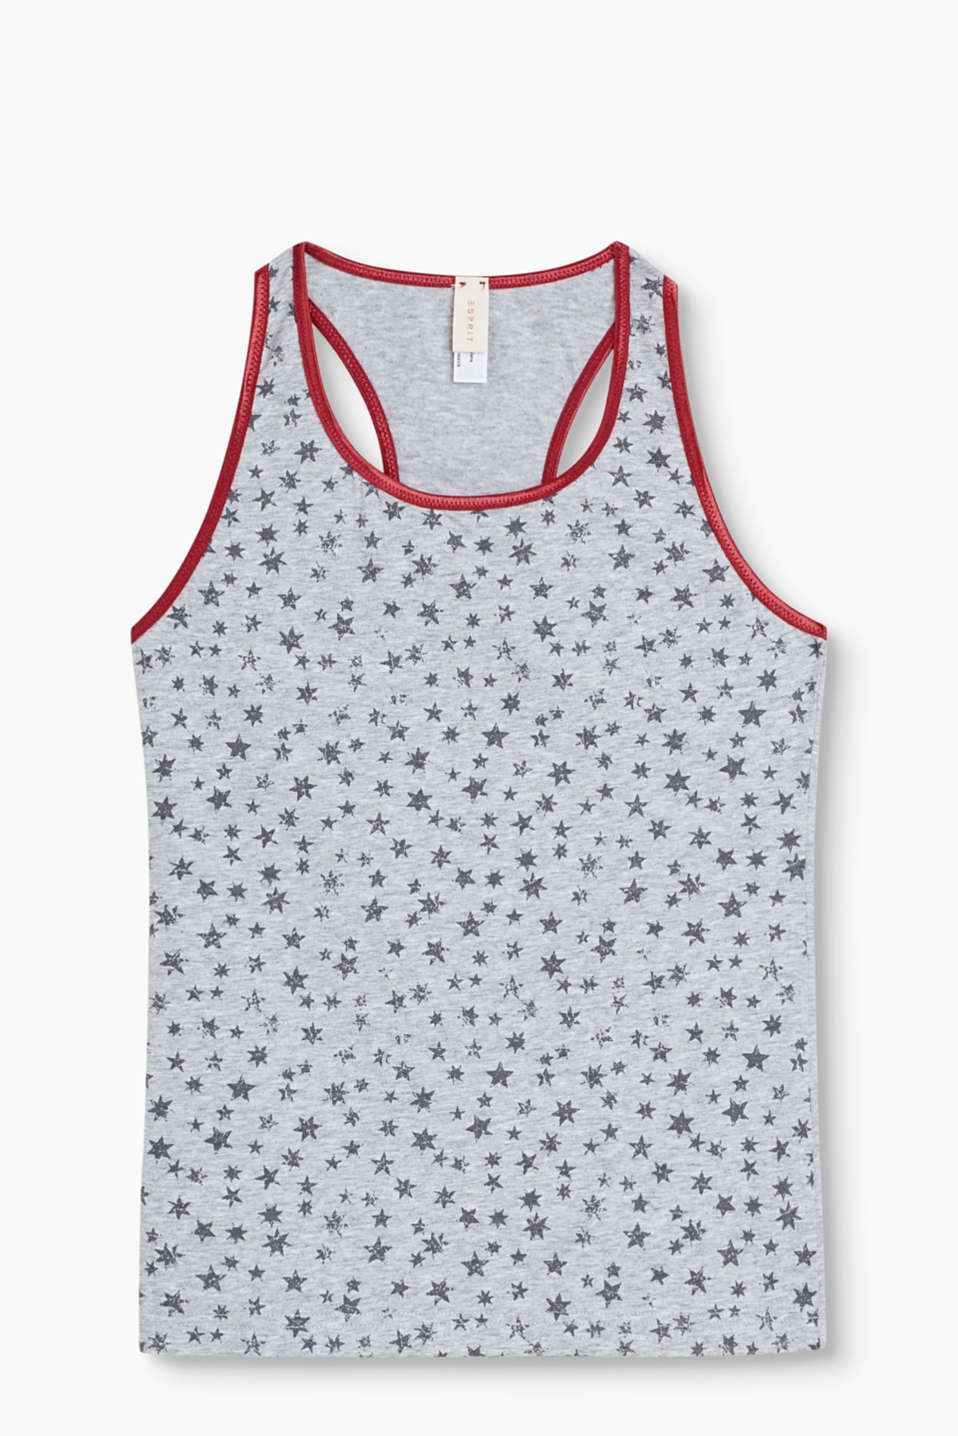 Reach for the stars: The melange jersey sets off the pretty vintage print of this tank top to perfection!